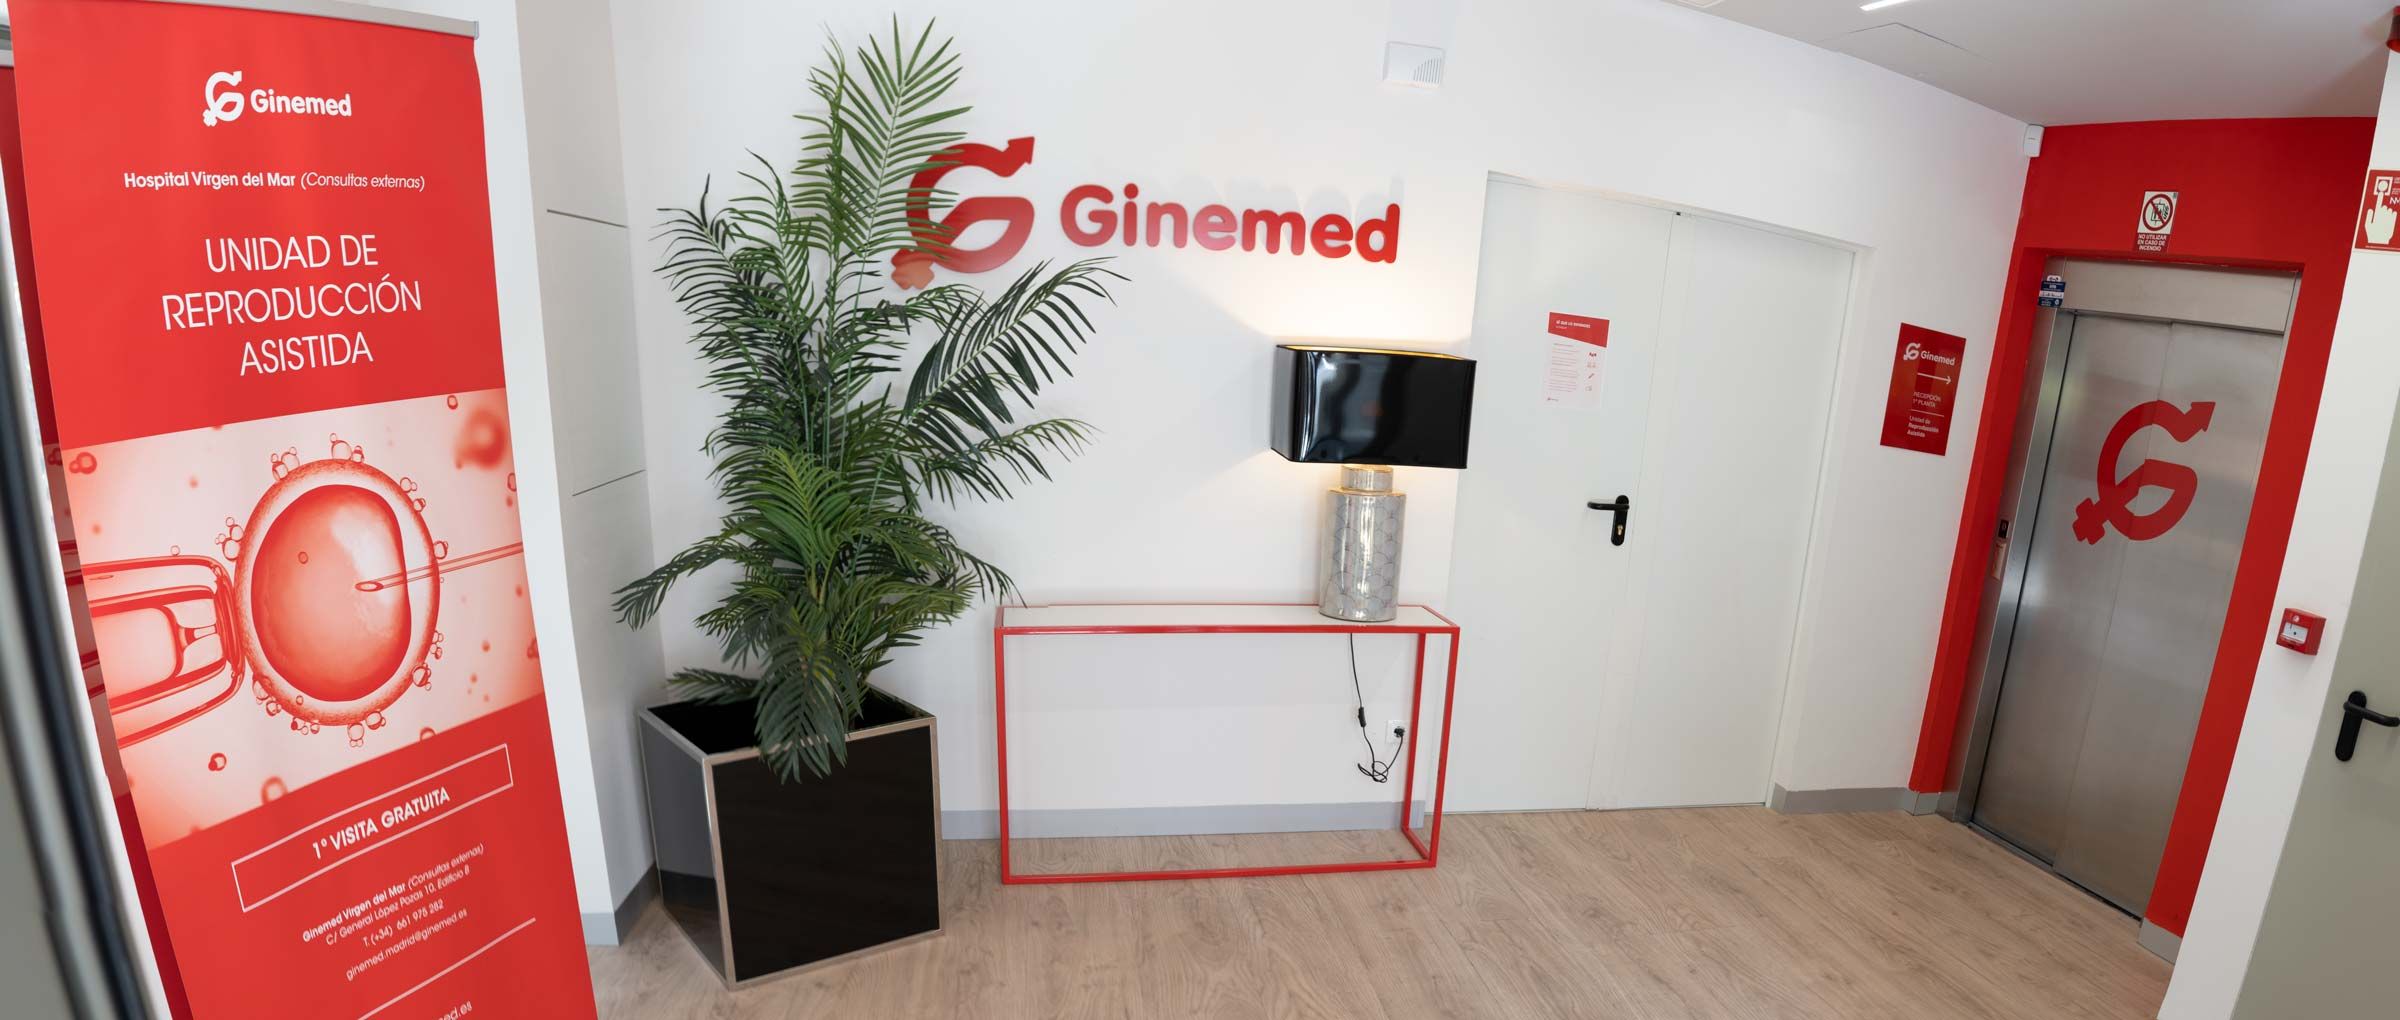 Entrance to Ginemed Madrid Center